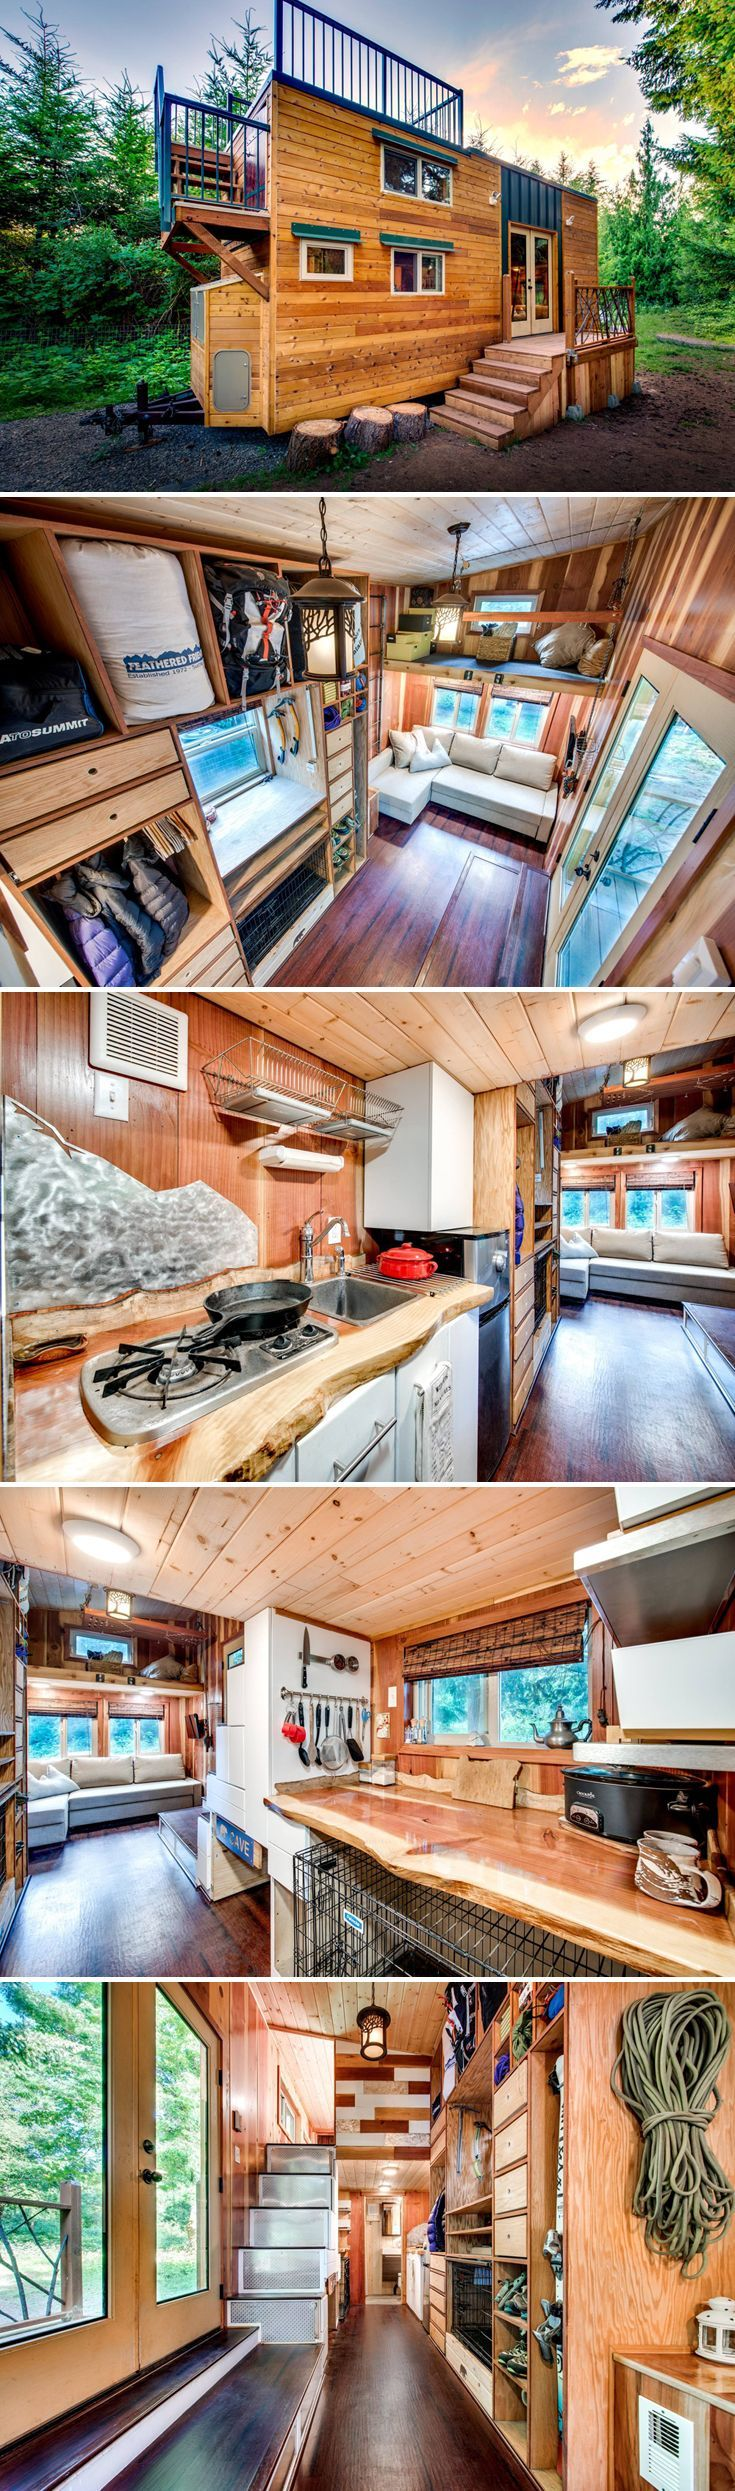 Basecamp by Backcountry Tiny Homes - Tiny Living